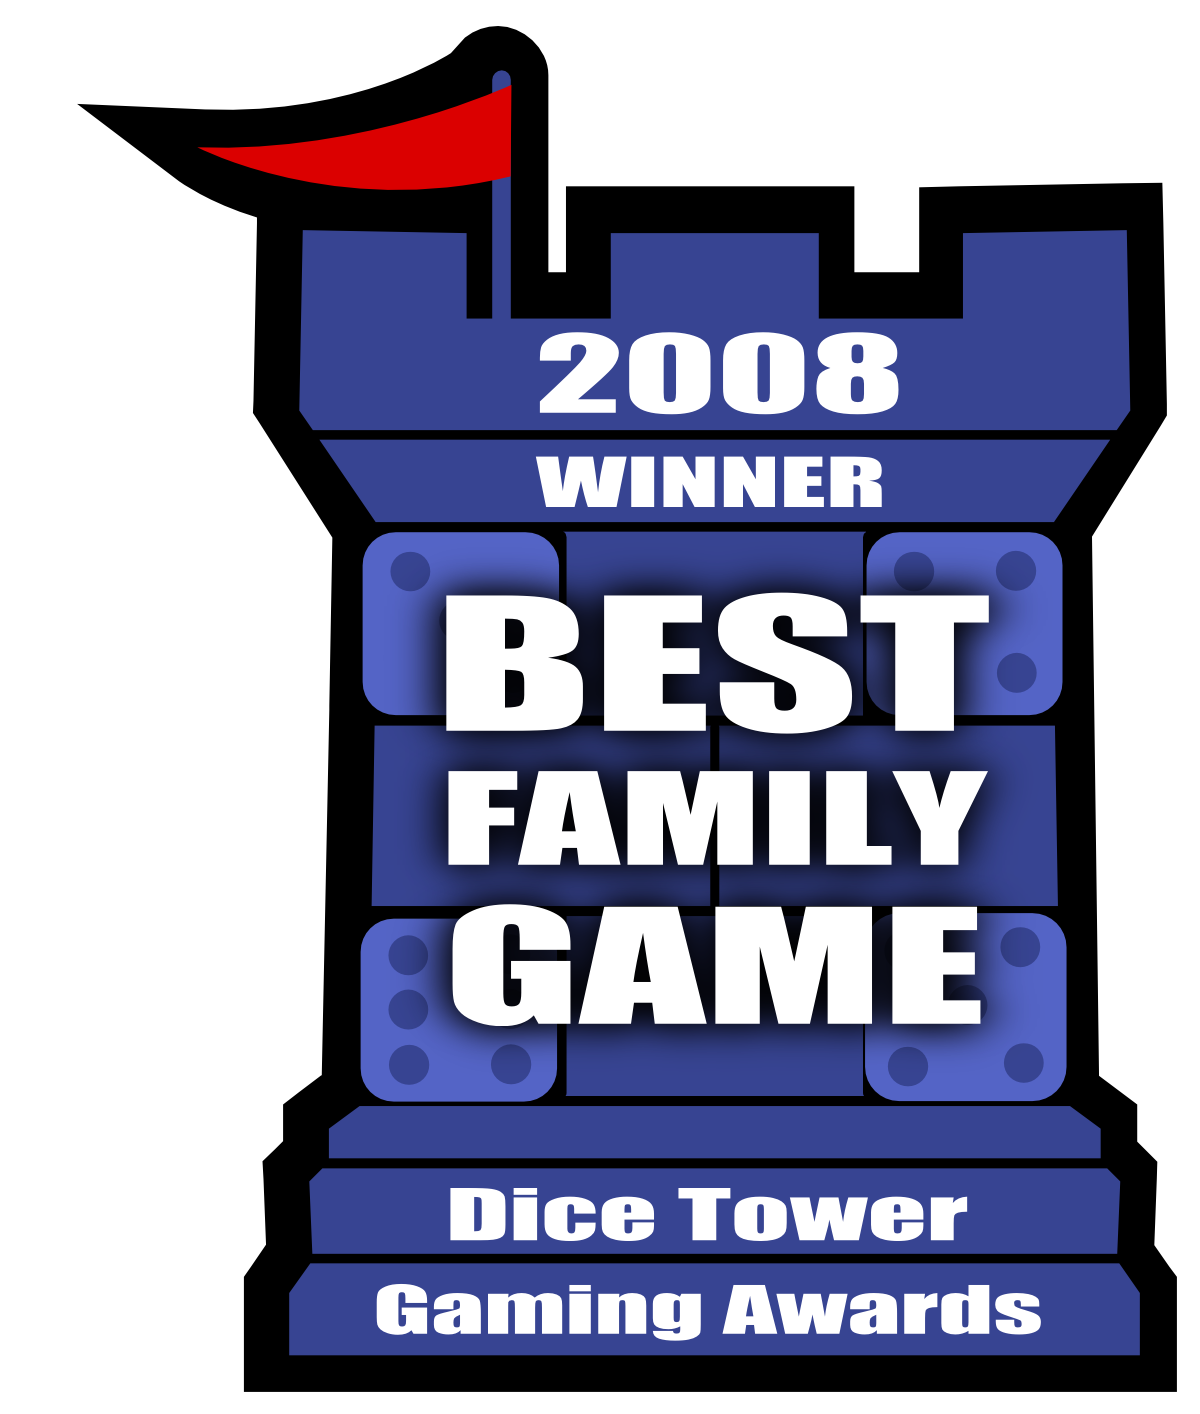 2008 Best Family Game Winner